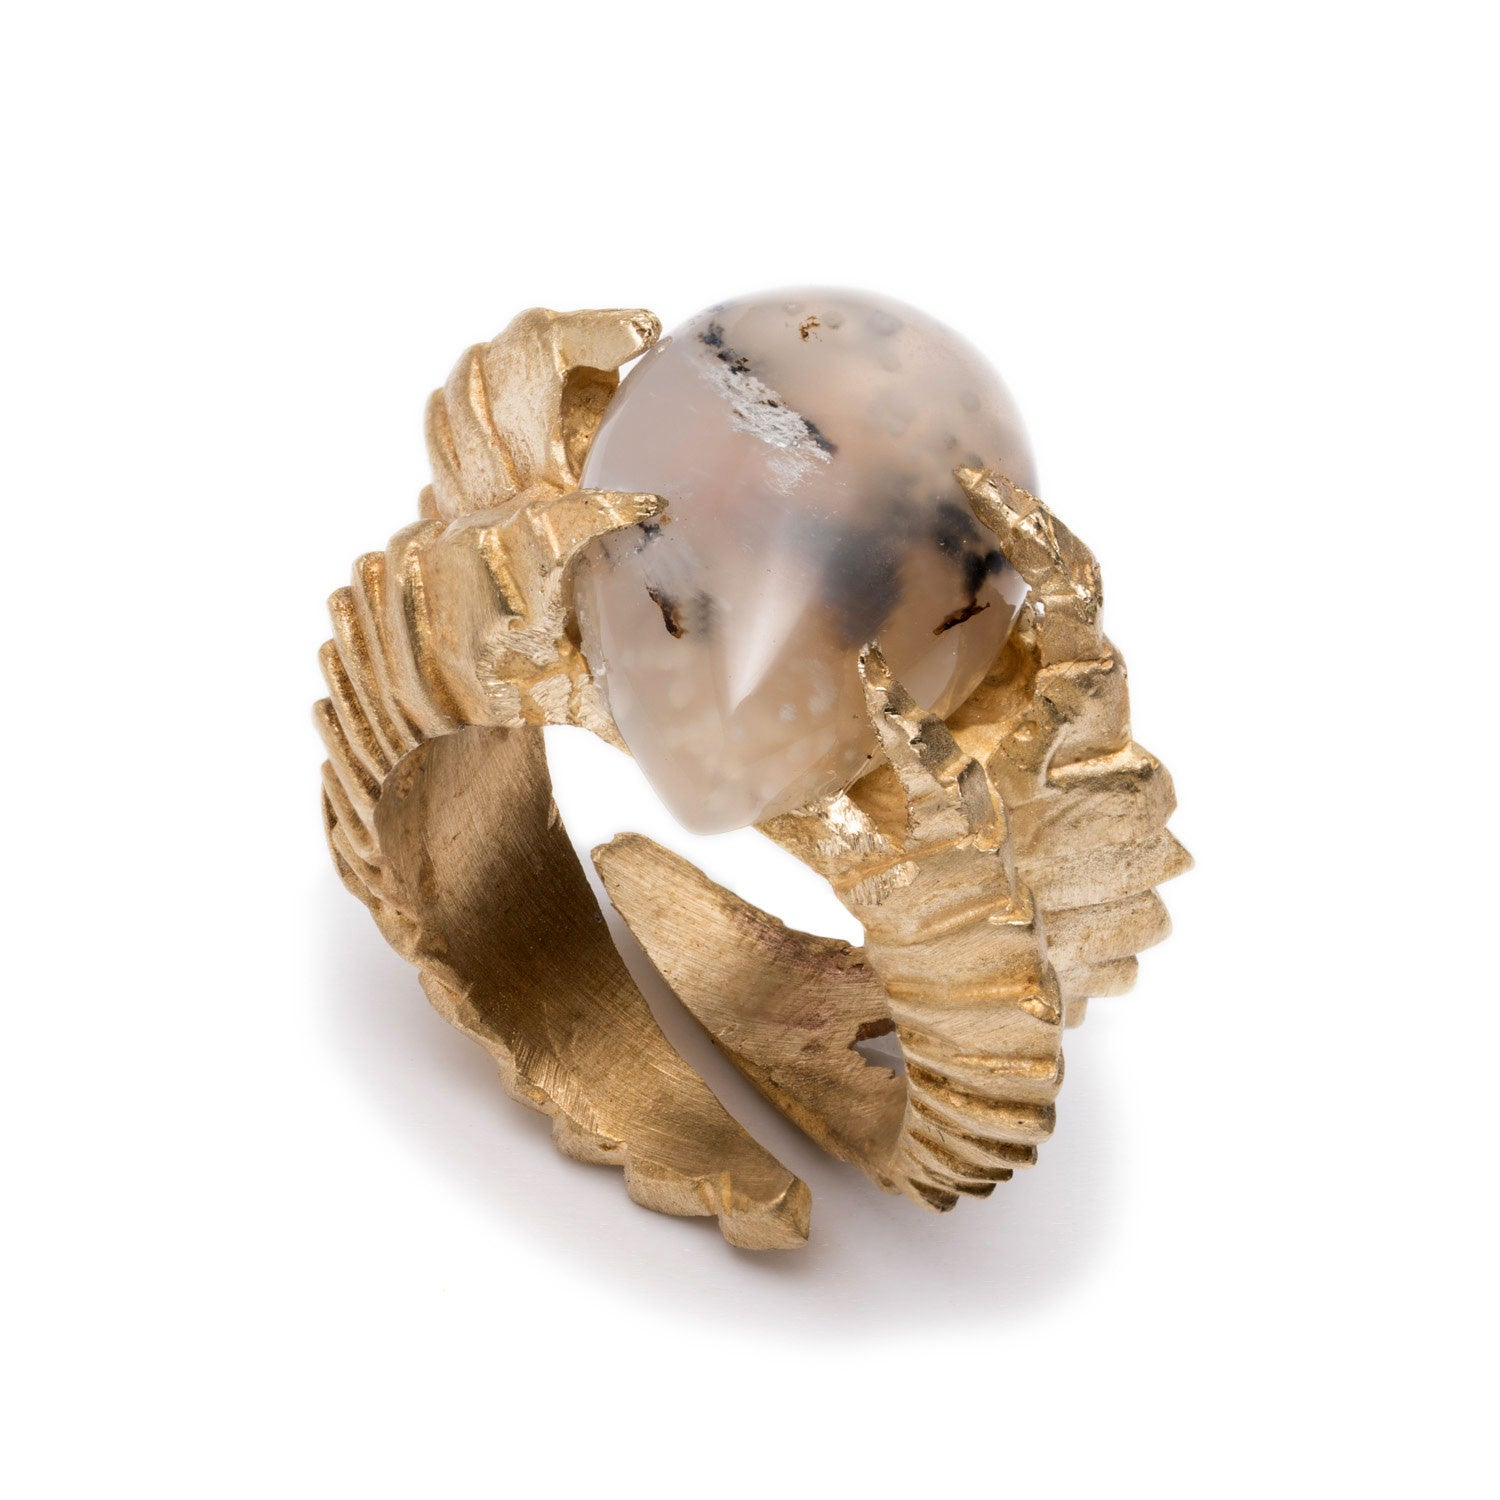 DECO AGATE RING